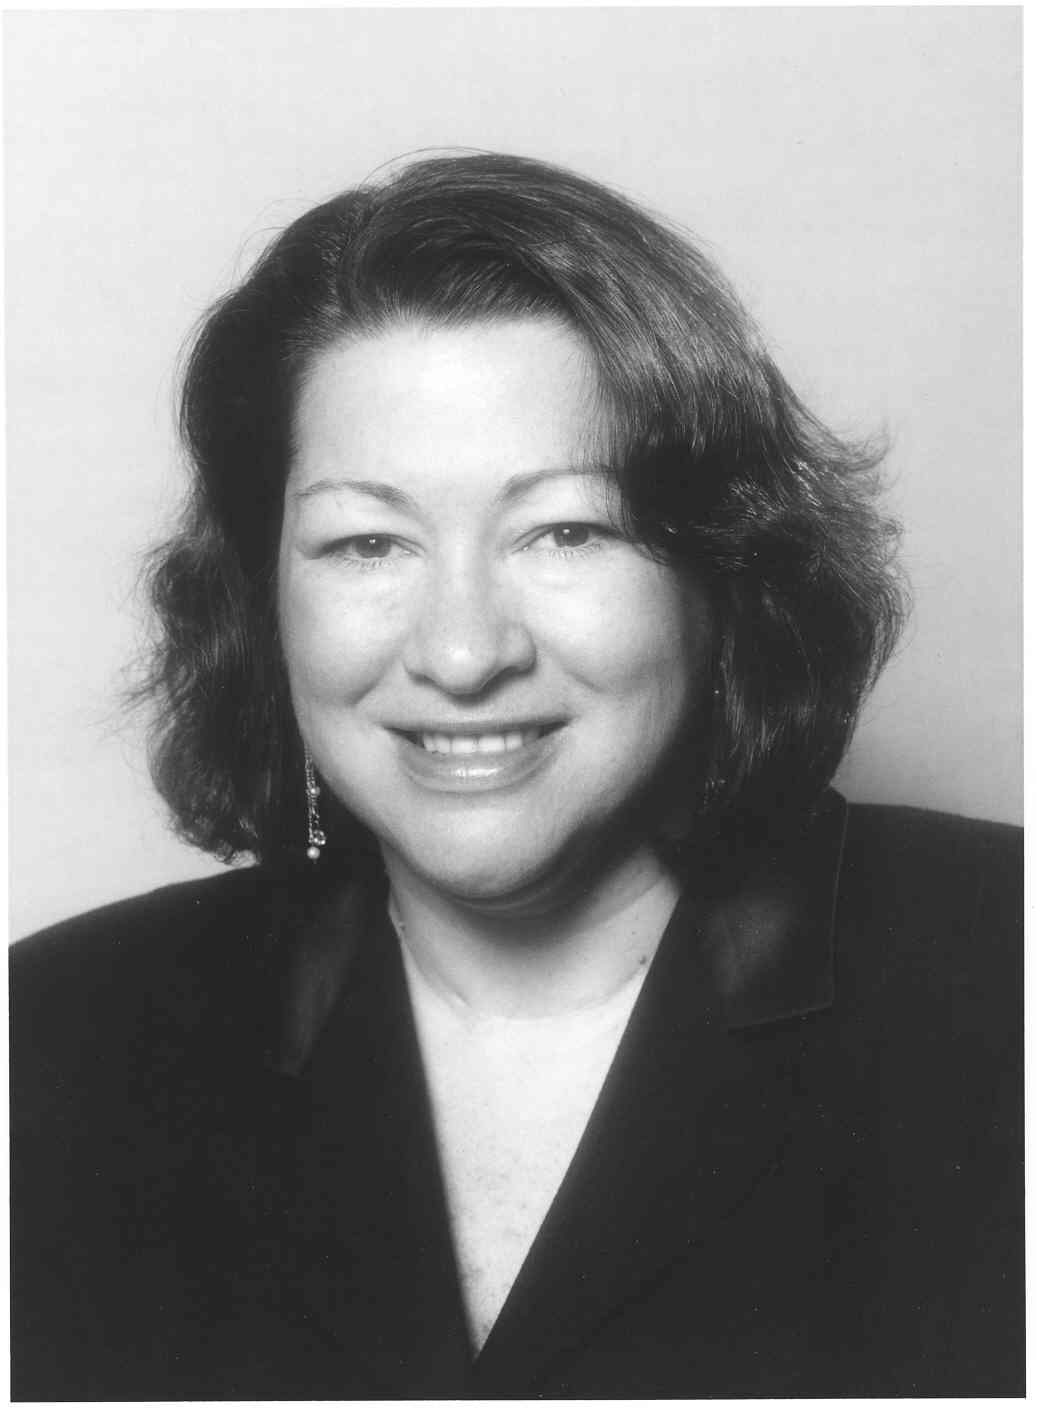 sonia sotomayor Sonia sotomayor (2009-present) recent decisions by justice sotomayor biographical data birth, residence, and family sonia sotomayor, associate justice of the united states supreme court, was born in bronx, new york, on june 25, 1954.